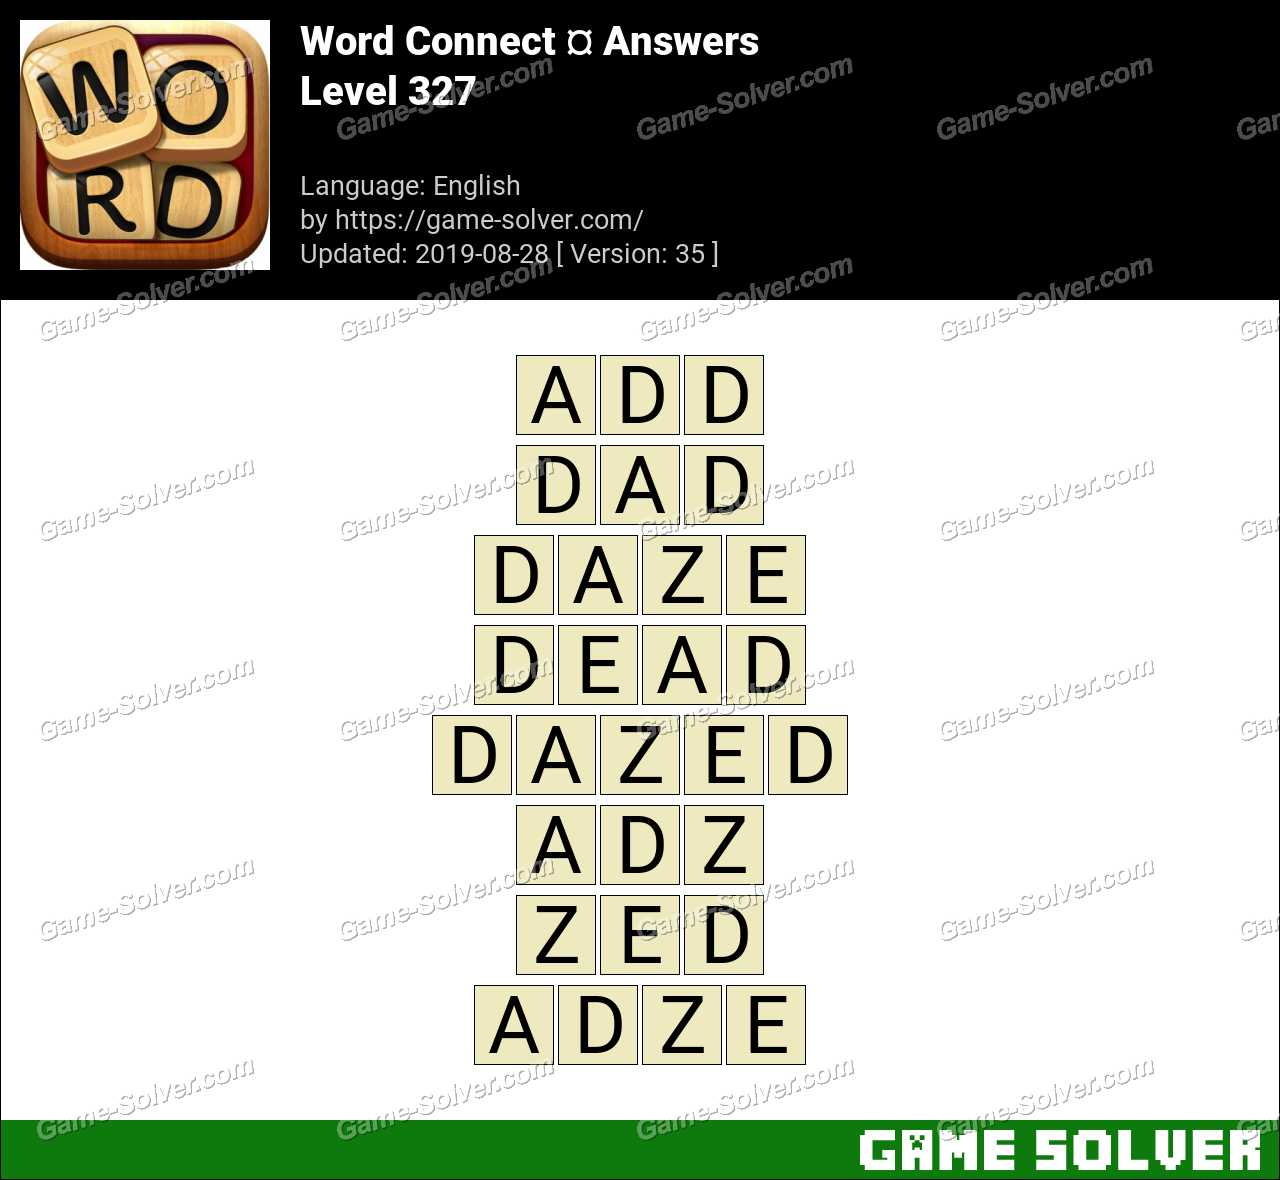 Word Connect Level 327 Answers